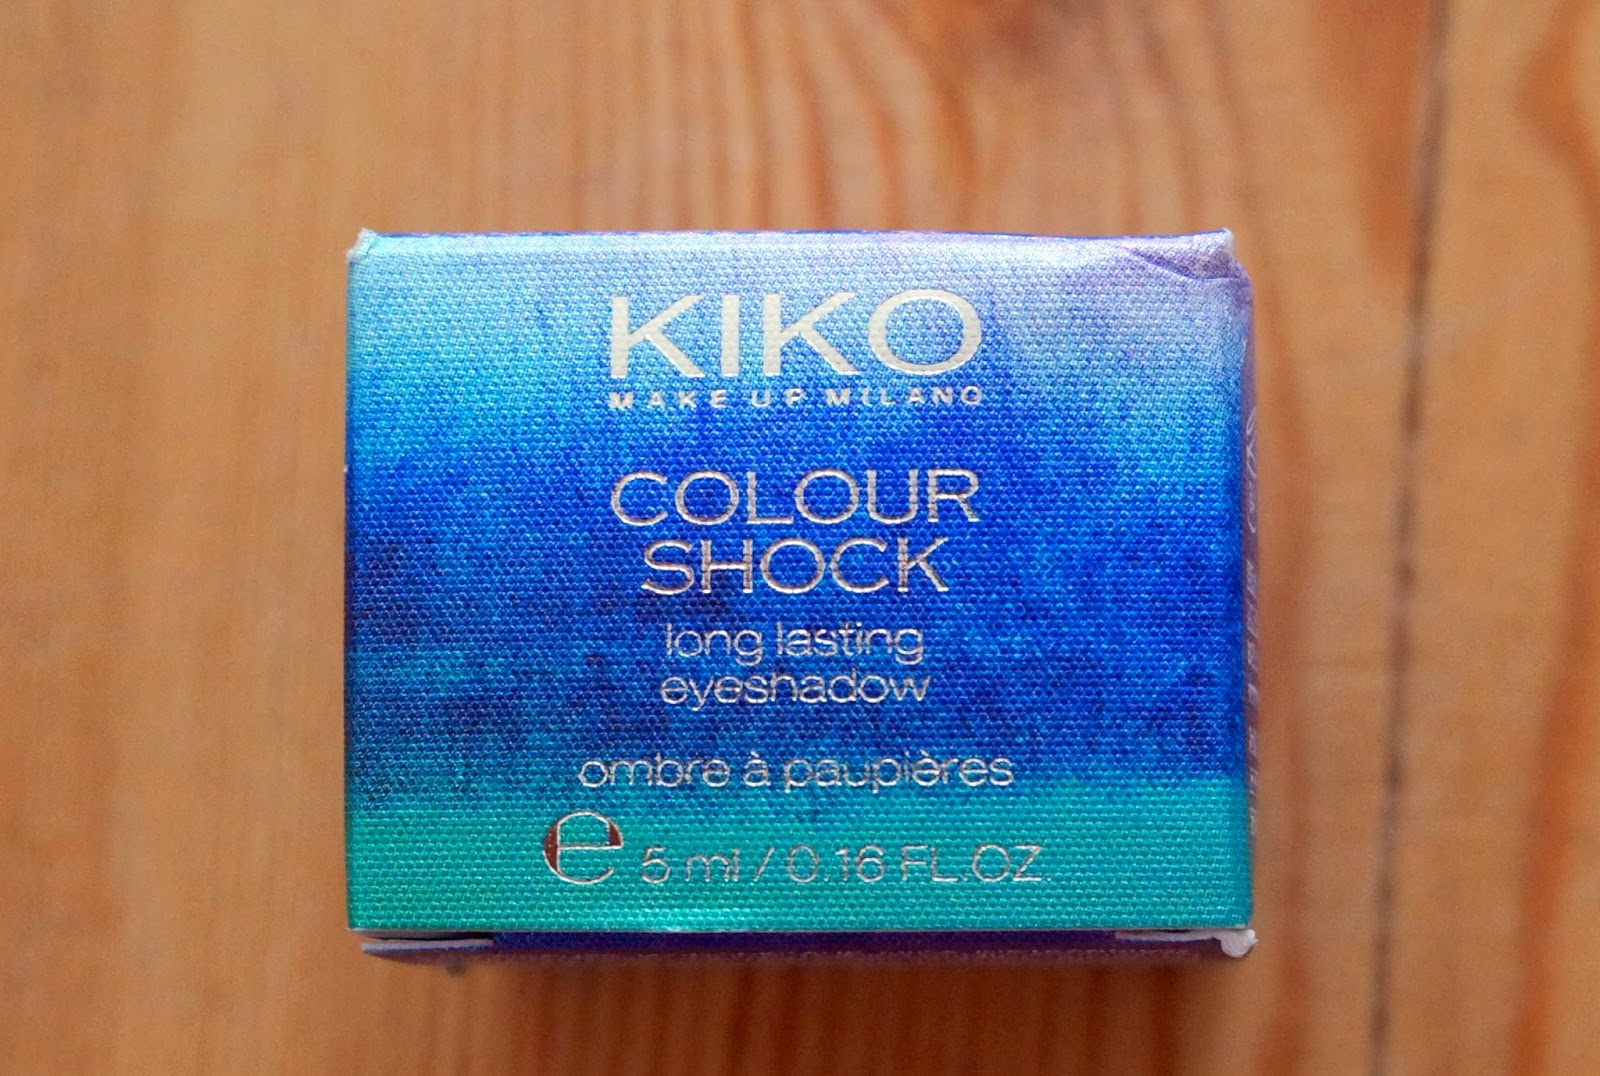 Kiko Colour Shock Eyeshadow